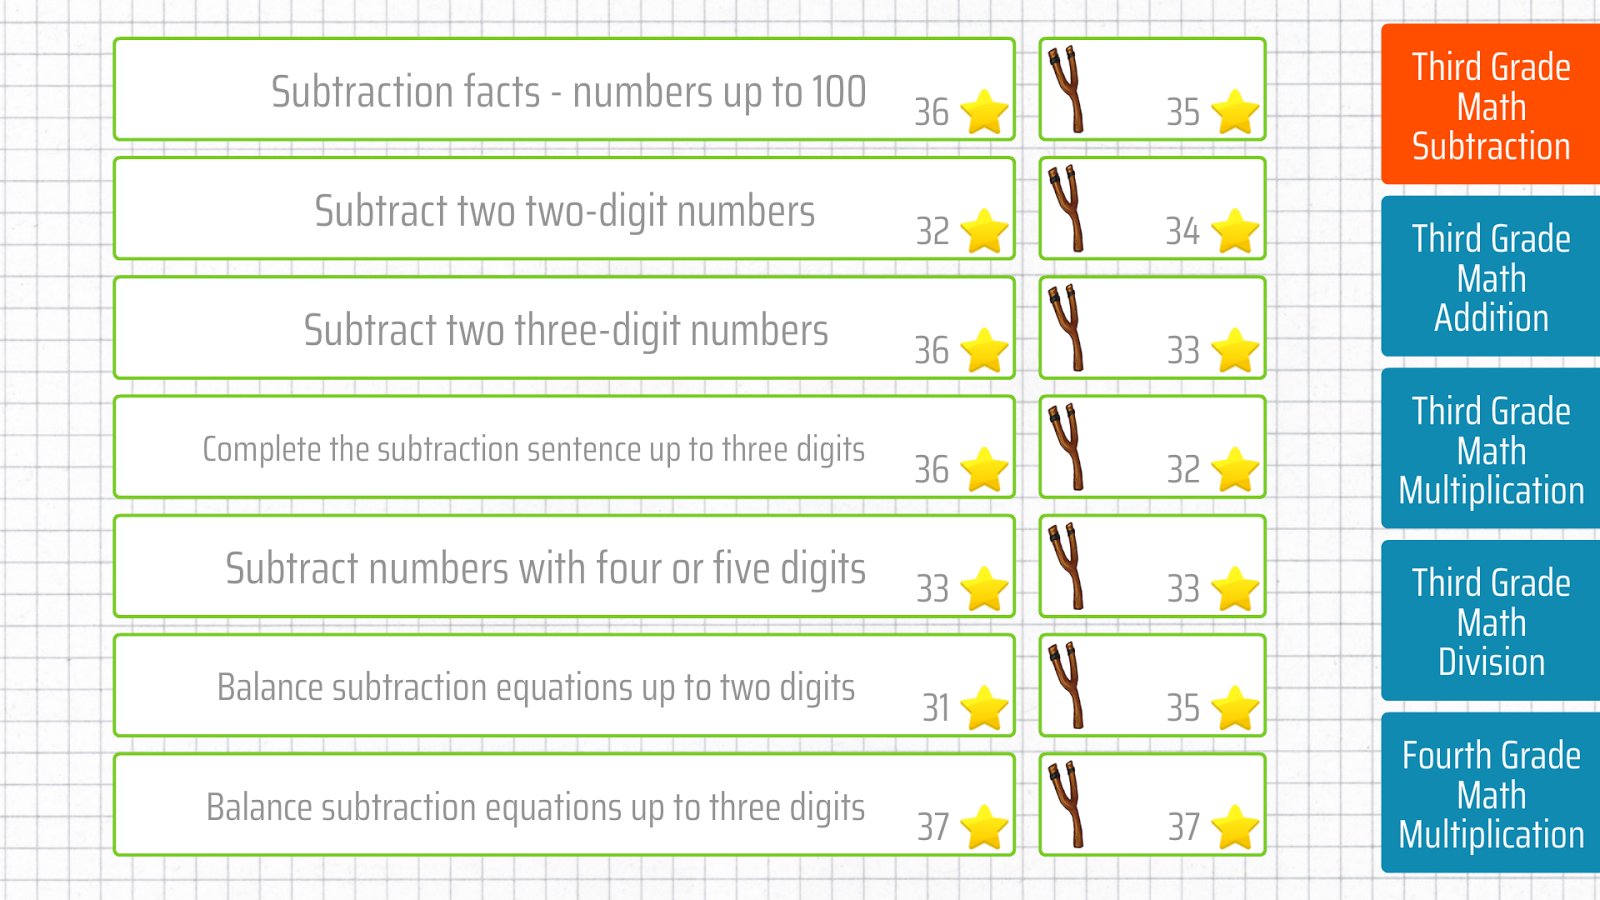 Worksheet Thrid Grade Math third grade math subtraction android apps on google play screenshot